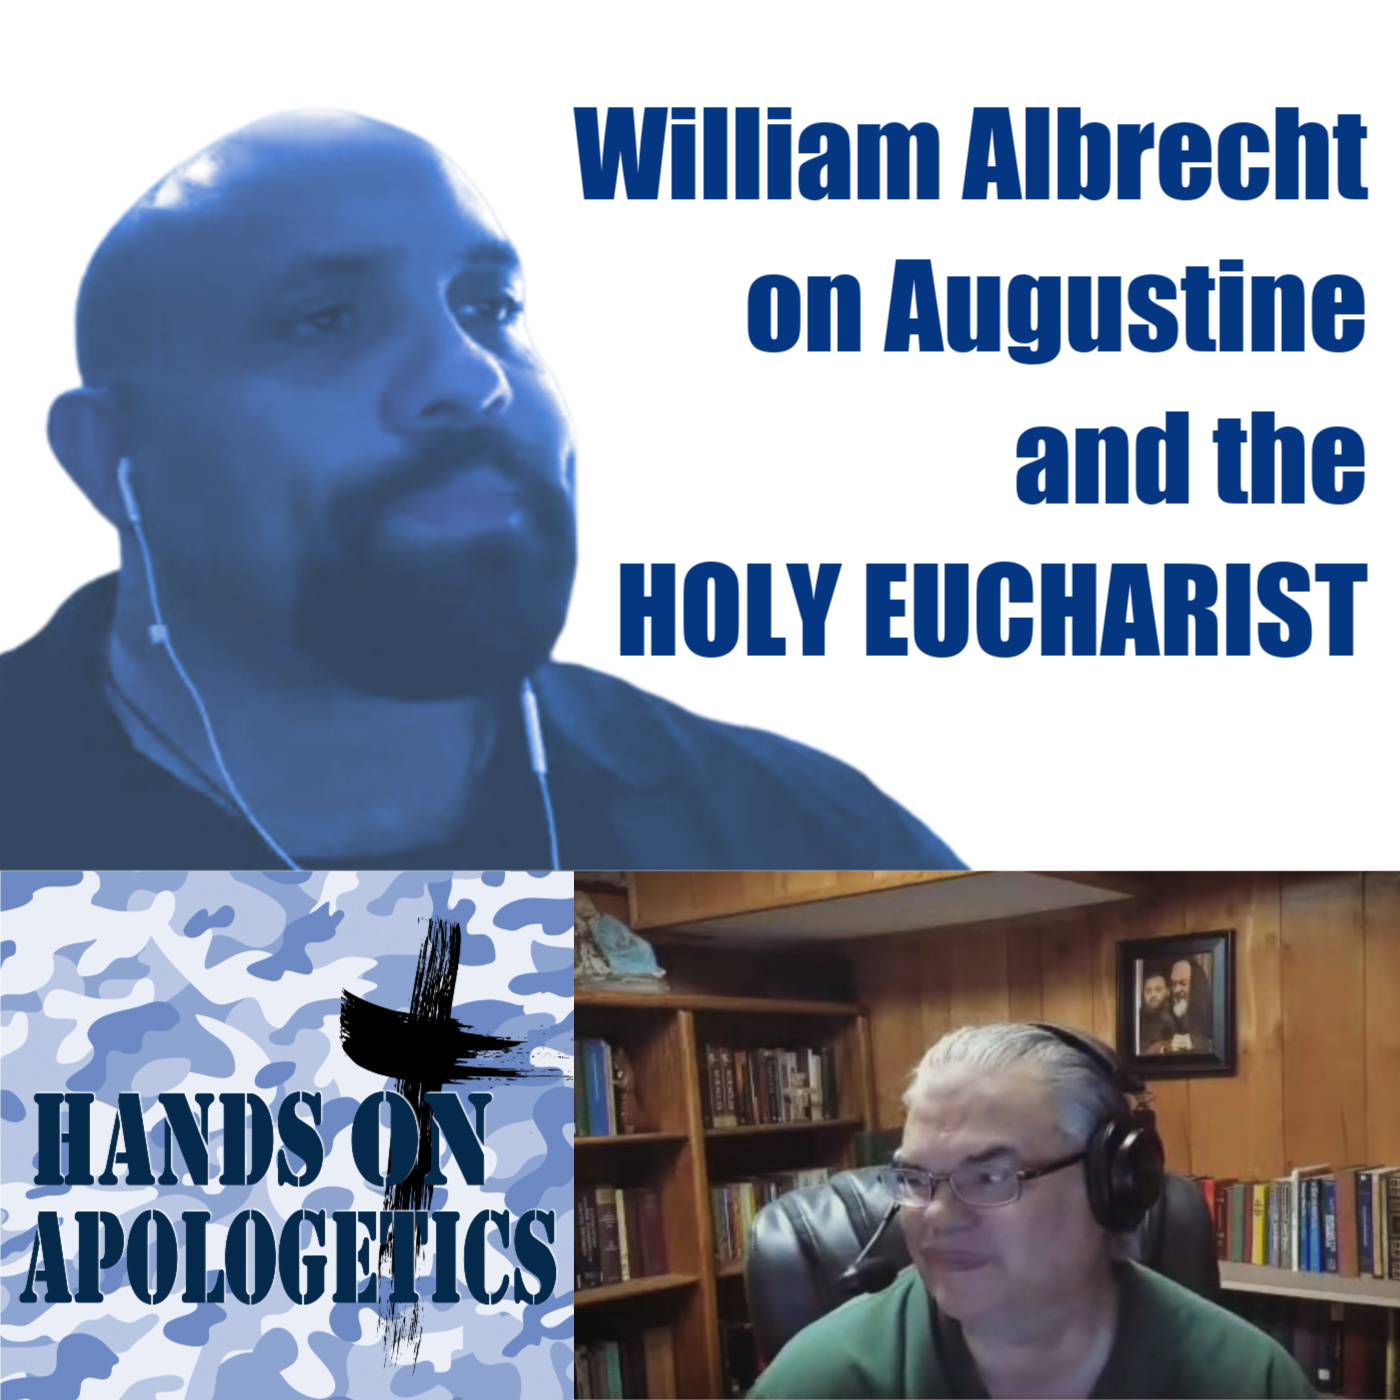 22 Jun 2020 – William Albrecht on Augustine and the Holy Eucharist